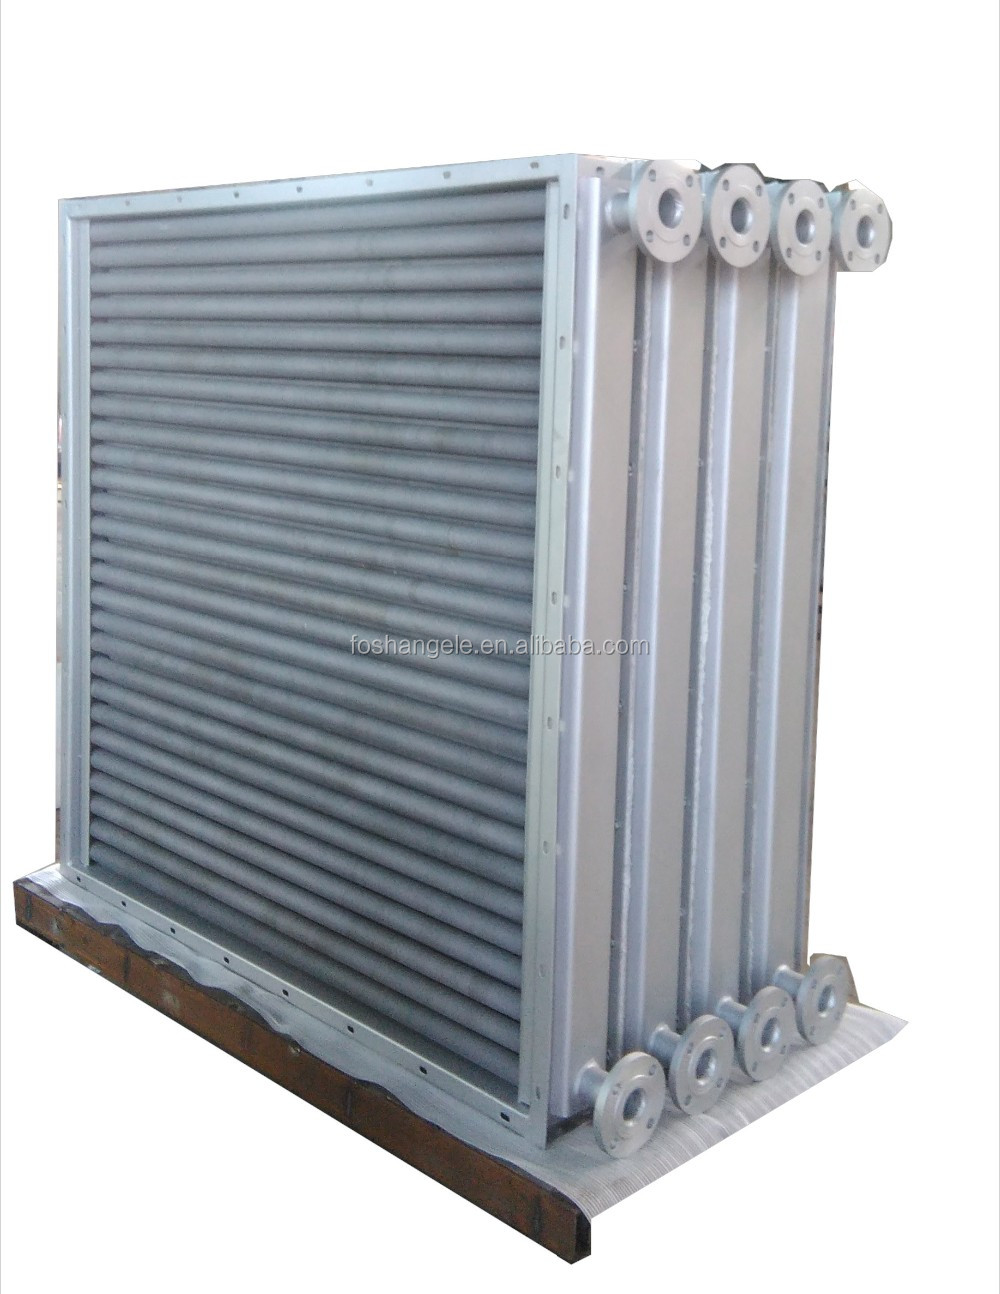 Air Water Tubular Heat Exchanger For Hardwood Drying Chamber/Kiln Dryer